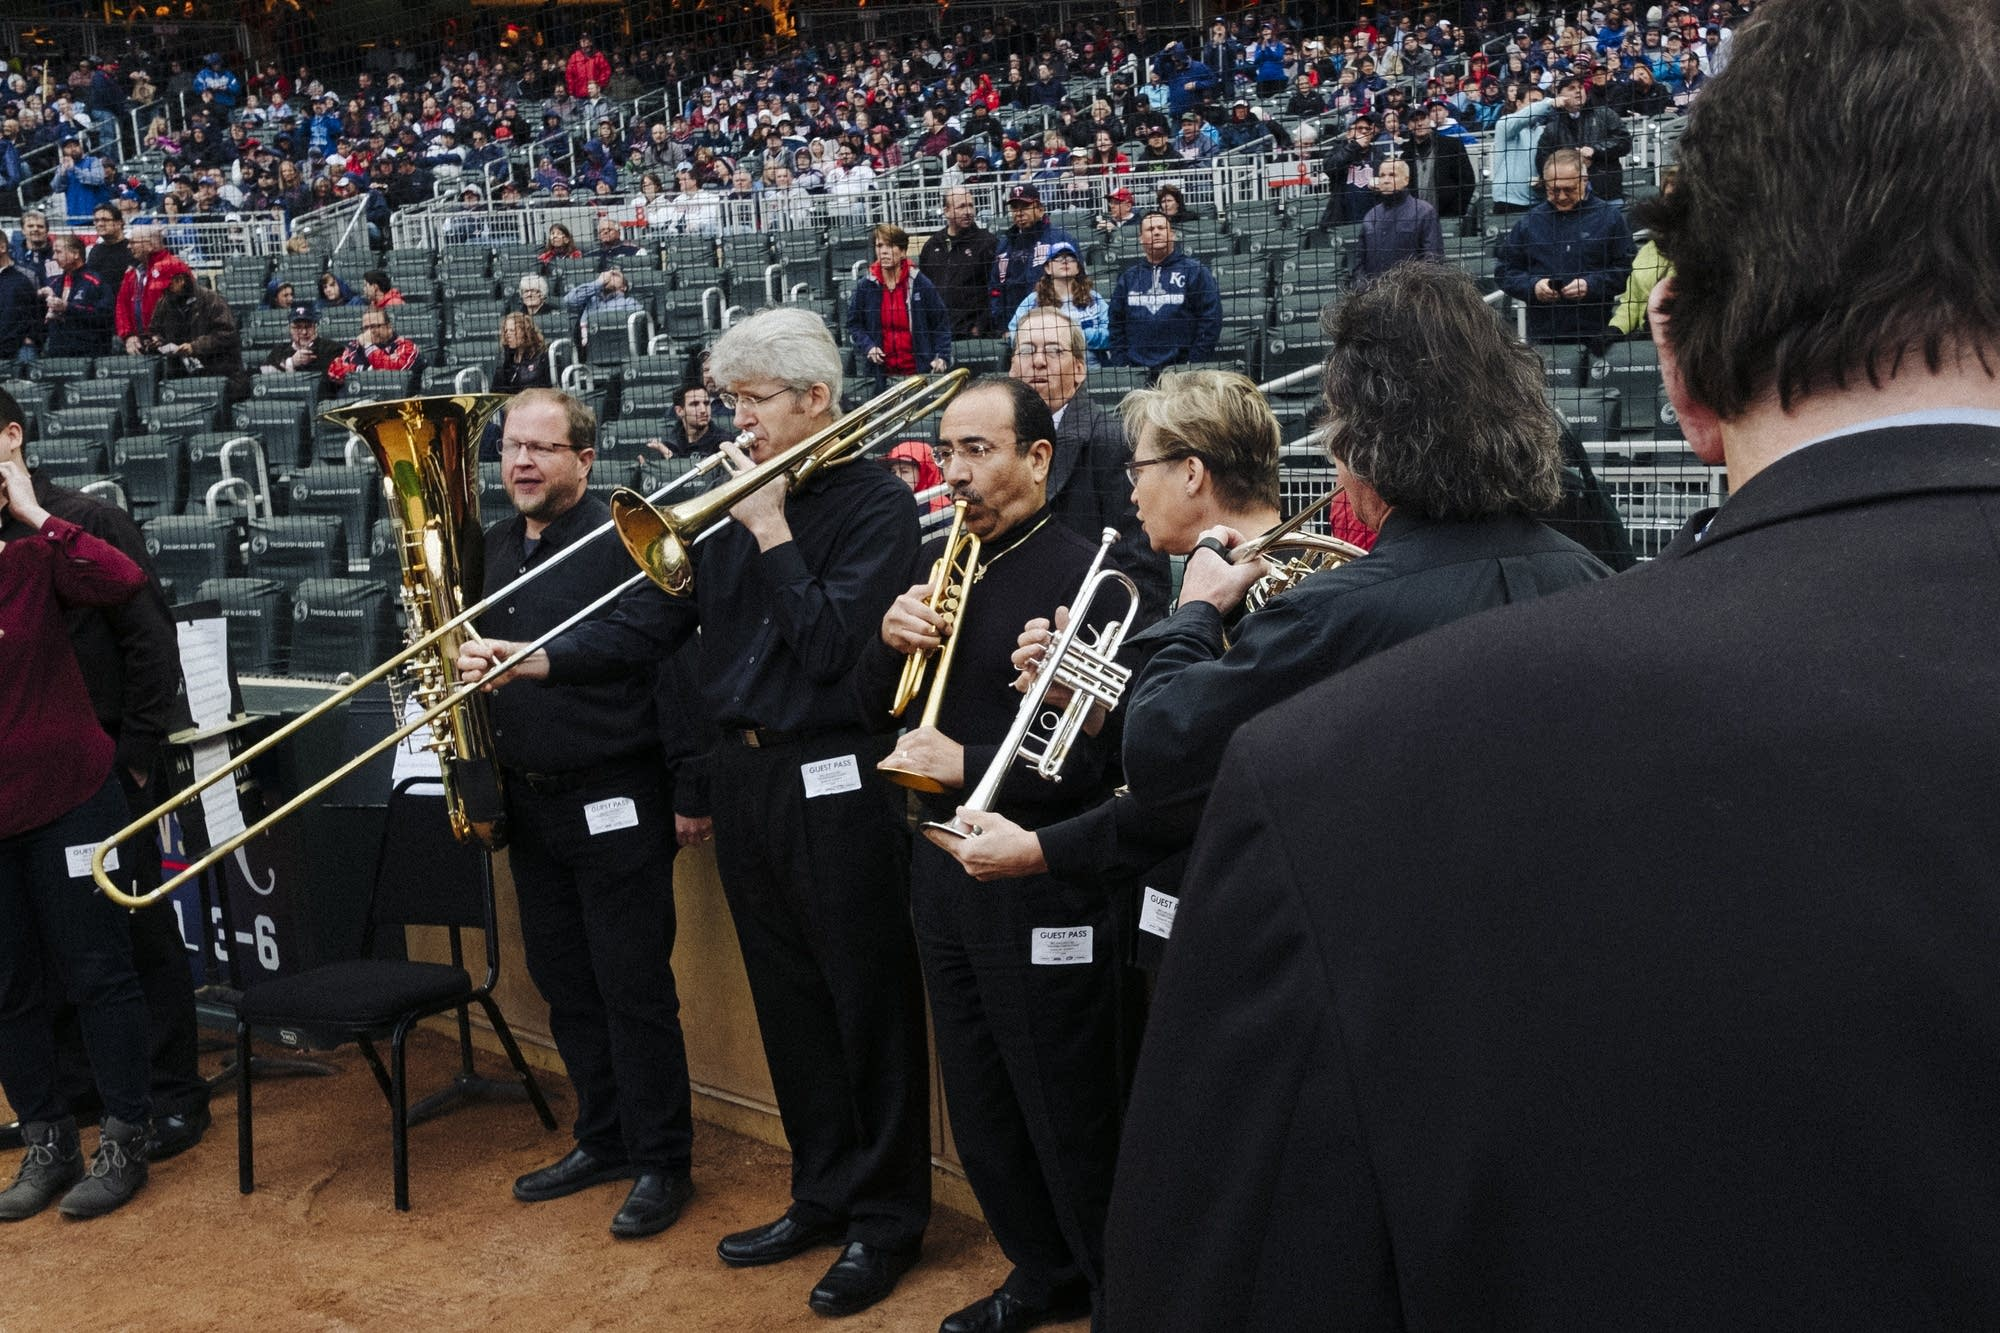 Members of the Minnesota Orchestra warm up.